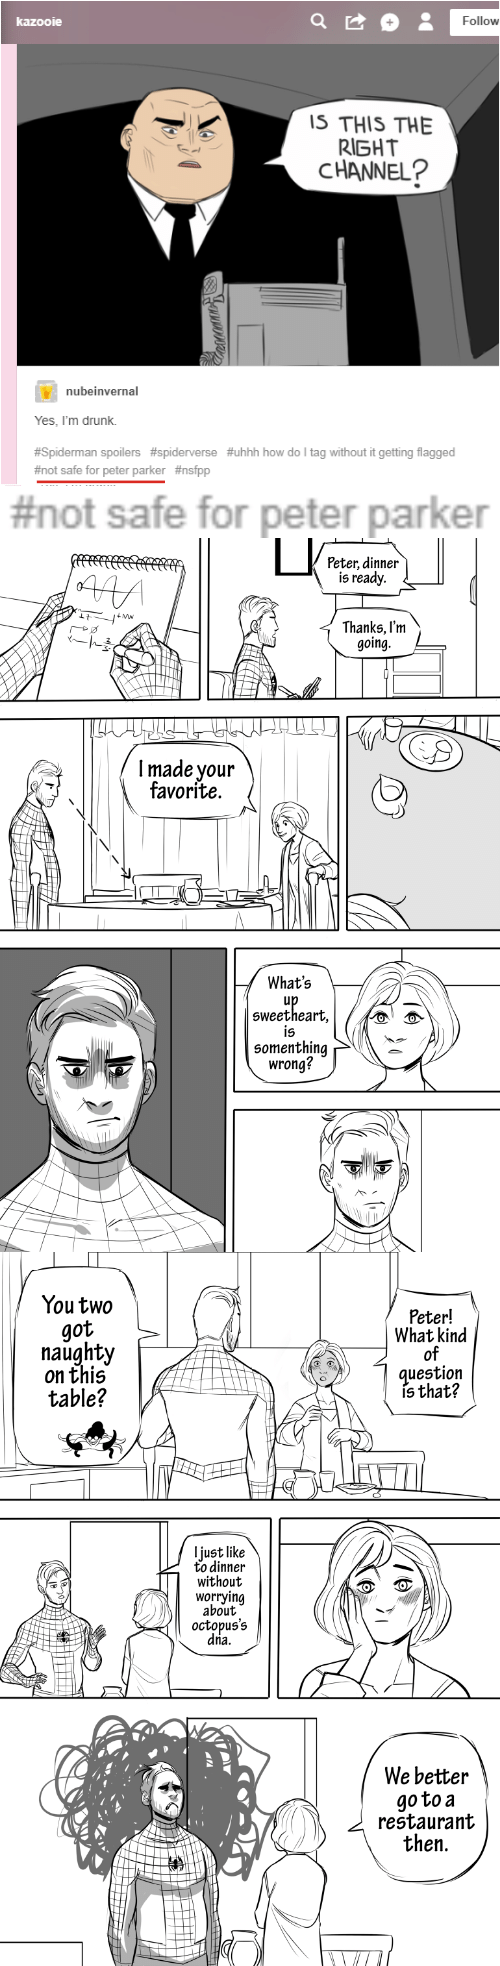 sweetheart: Follow  kazooie  IS THIS THE  RIGHT  CHANNEL?  nubeinvernal  Yes, I'm drunk.  #Spiderman spoilers #spiderverse #uhhh how do I tag without it getting flagged  #not safe for peter parker #nsfpp   | #not safe for peter parker   Peter, dinner  is ready  AAA  Thanks, I'm  going.  Imade your  favorite.  What's  up  sweetheart,  is  somenthing  wrong?   You two  Peter!  What kind  of  question  is that?  got  naughty  on this  table?  ljust like  to dinner  without  worrying  about  octopus's  dria.  We better  go to a  restaurant  then